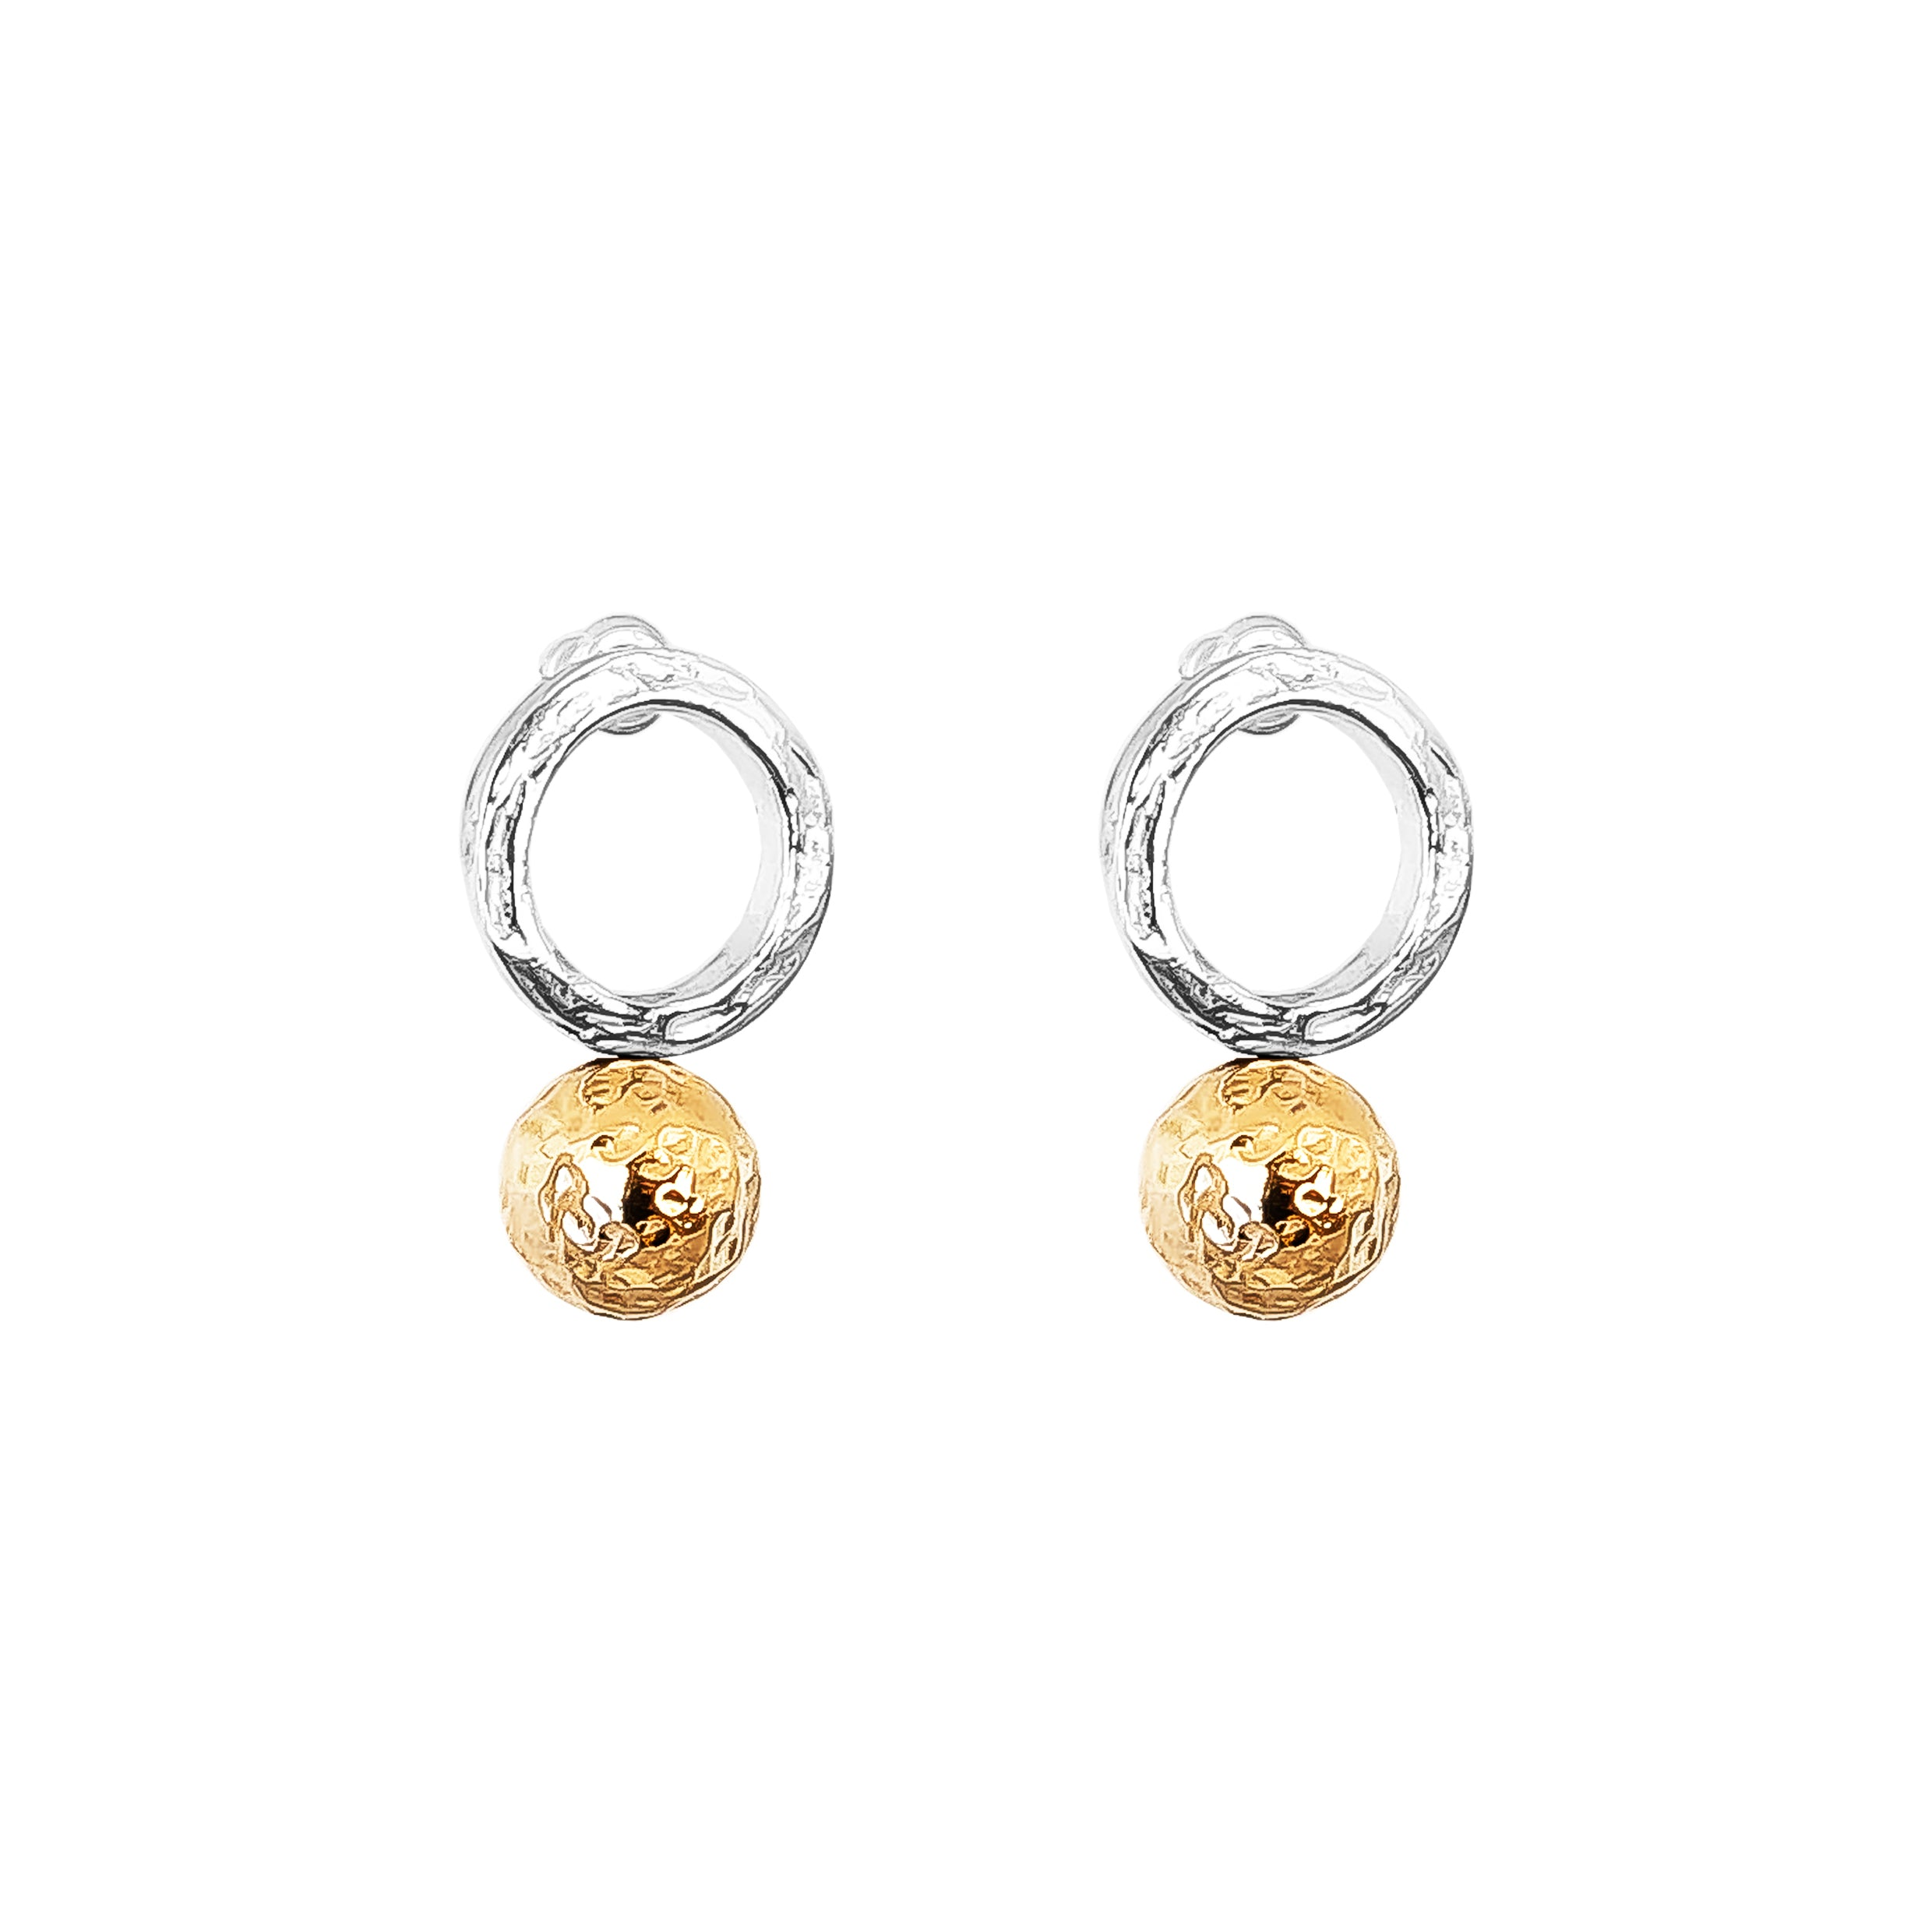 Radison Large Feature Stud Earrings | Hammered Rose Detail